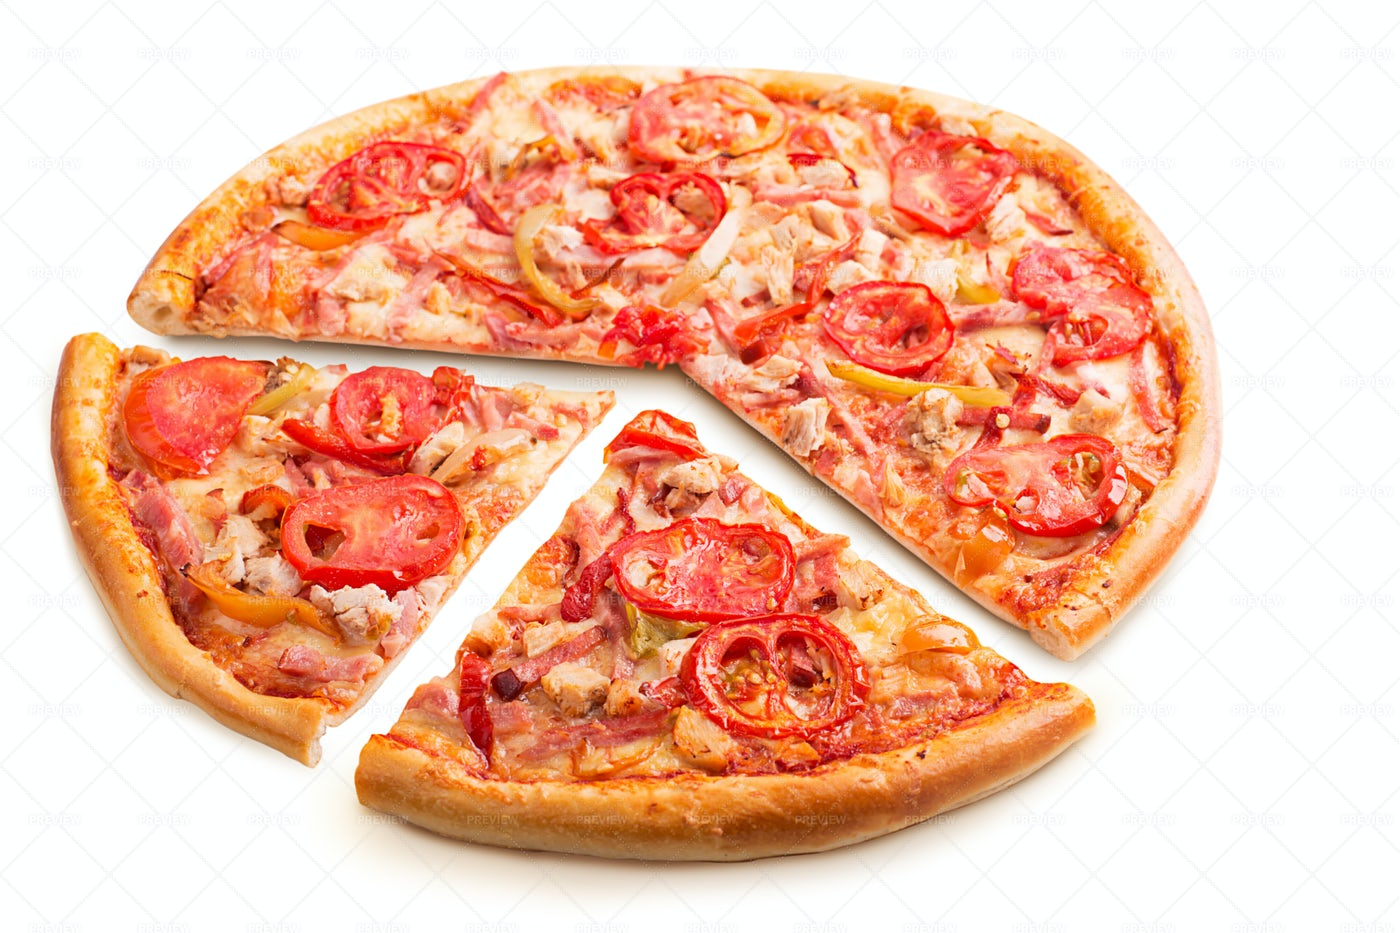 Pizza With Vegetables: Stock Photos